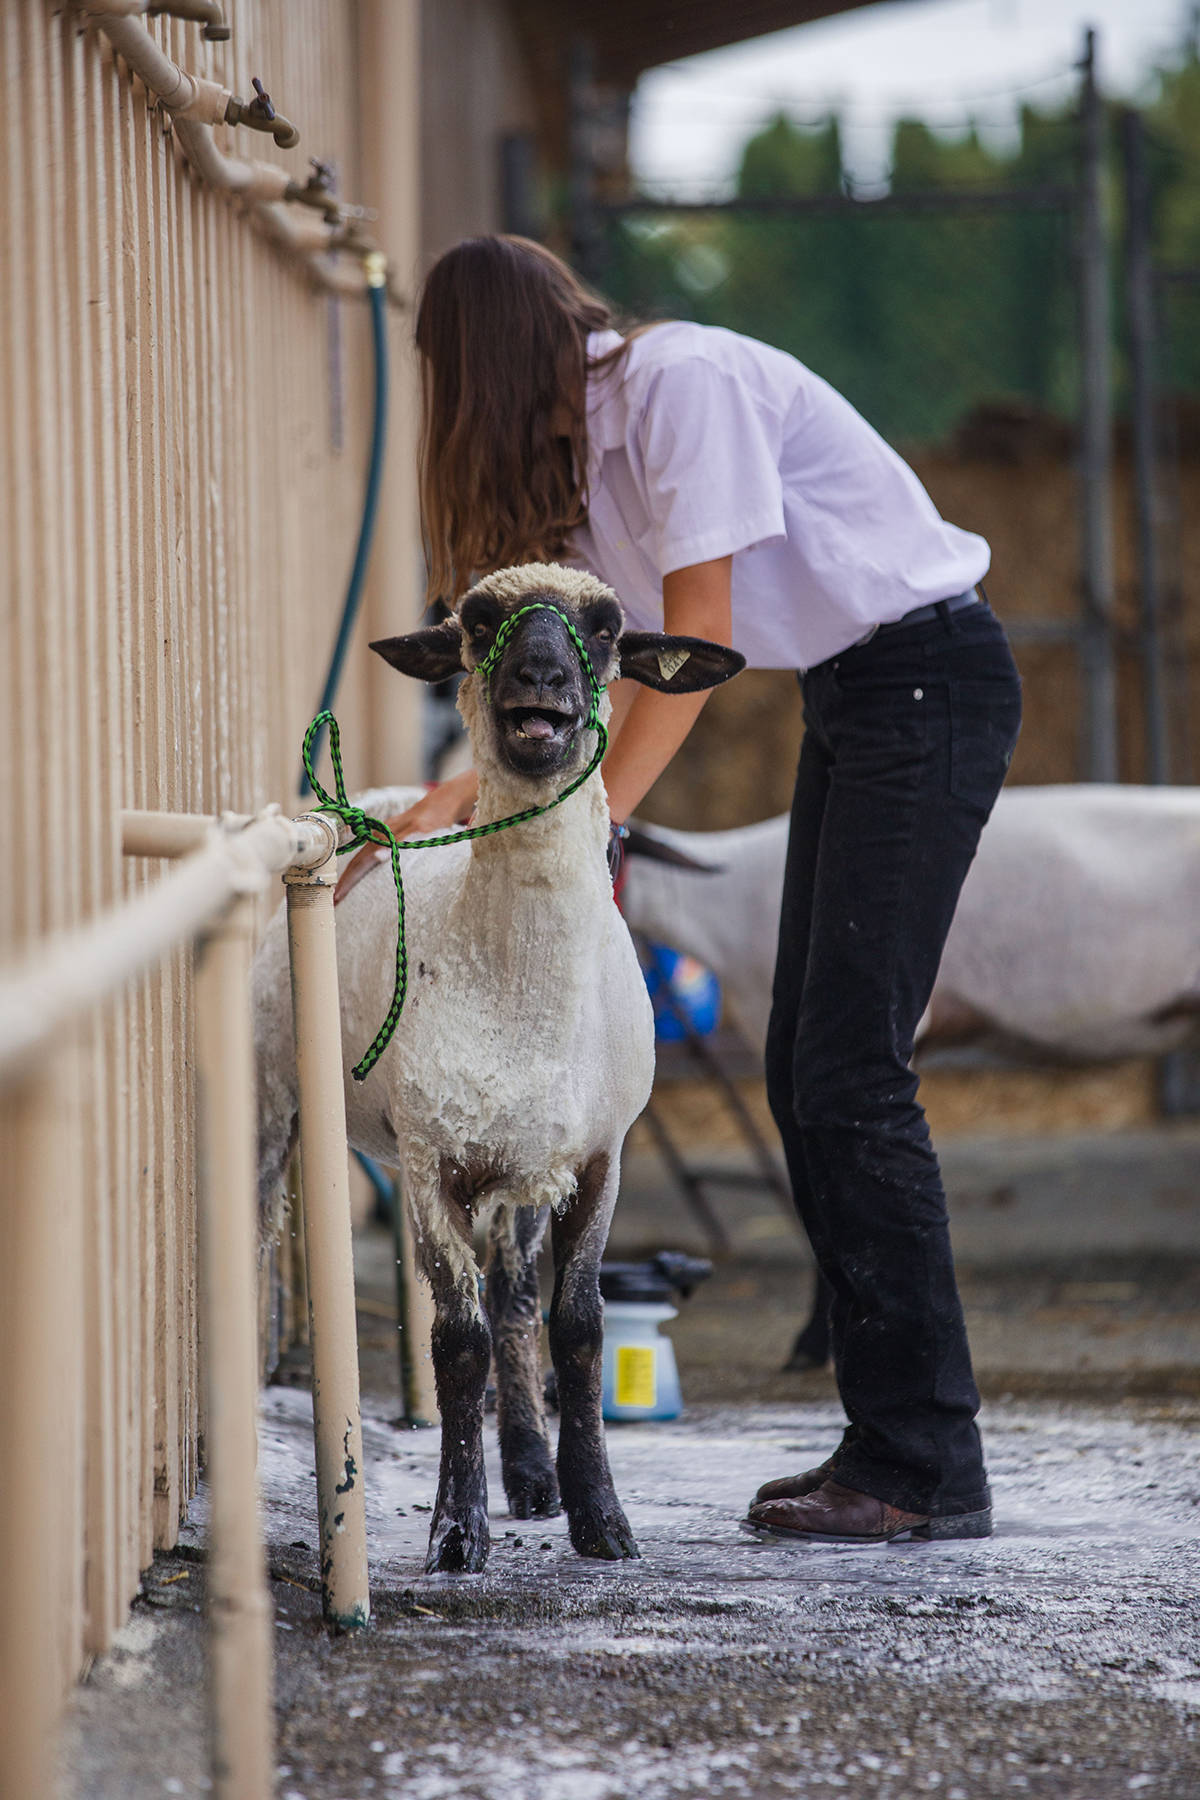 Don't miss the chance to see the 4H Club and FFA kids and their prize winning animals